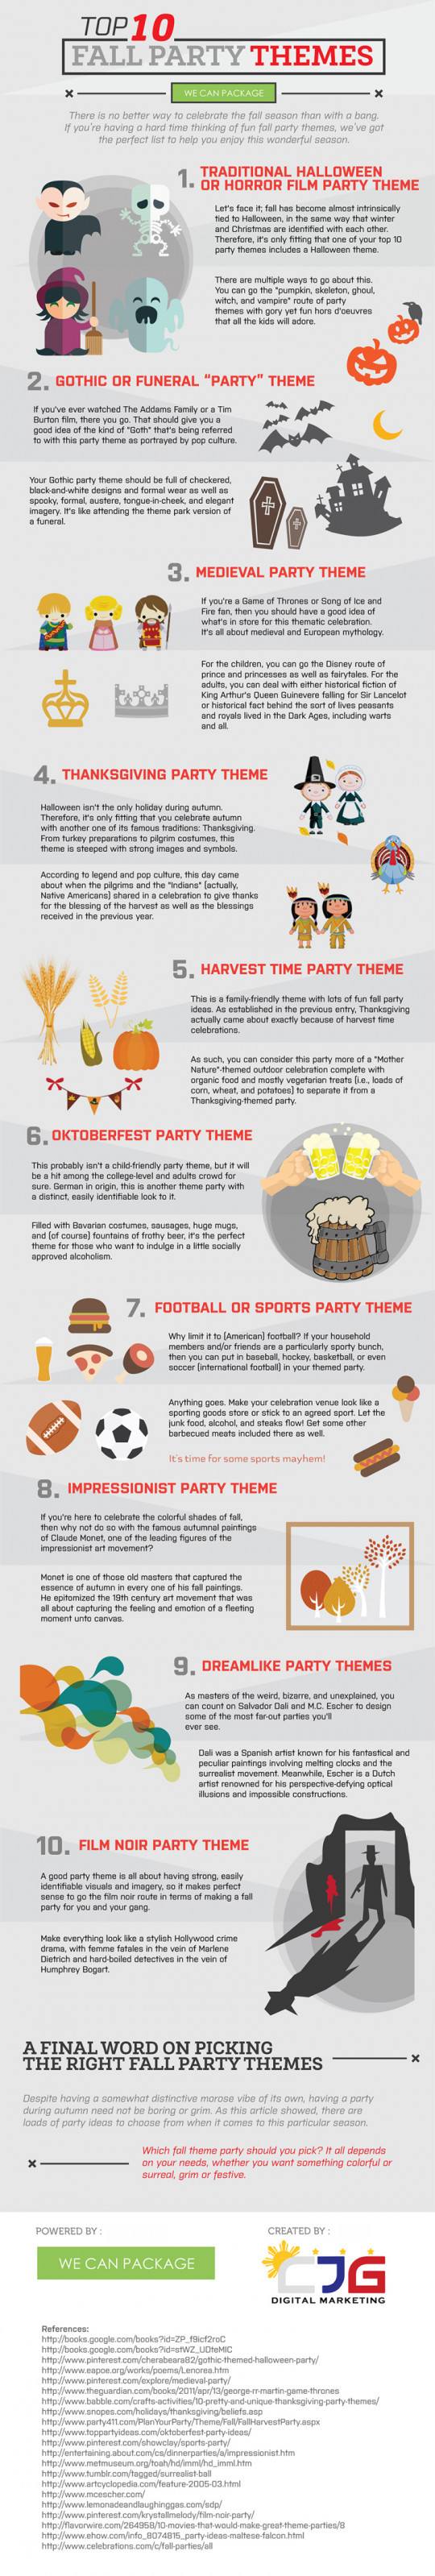 Top 10 Fall Party Themes